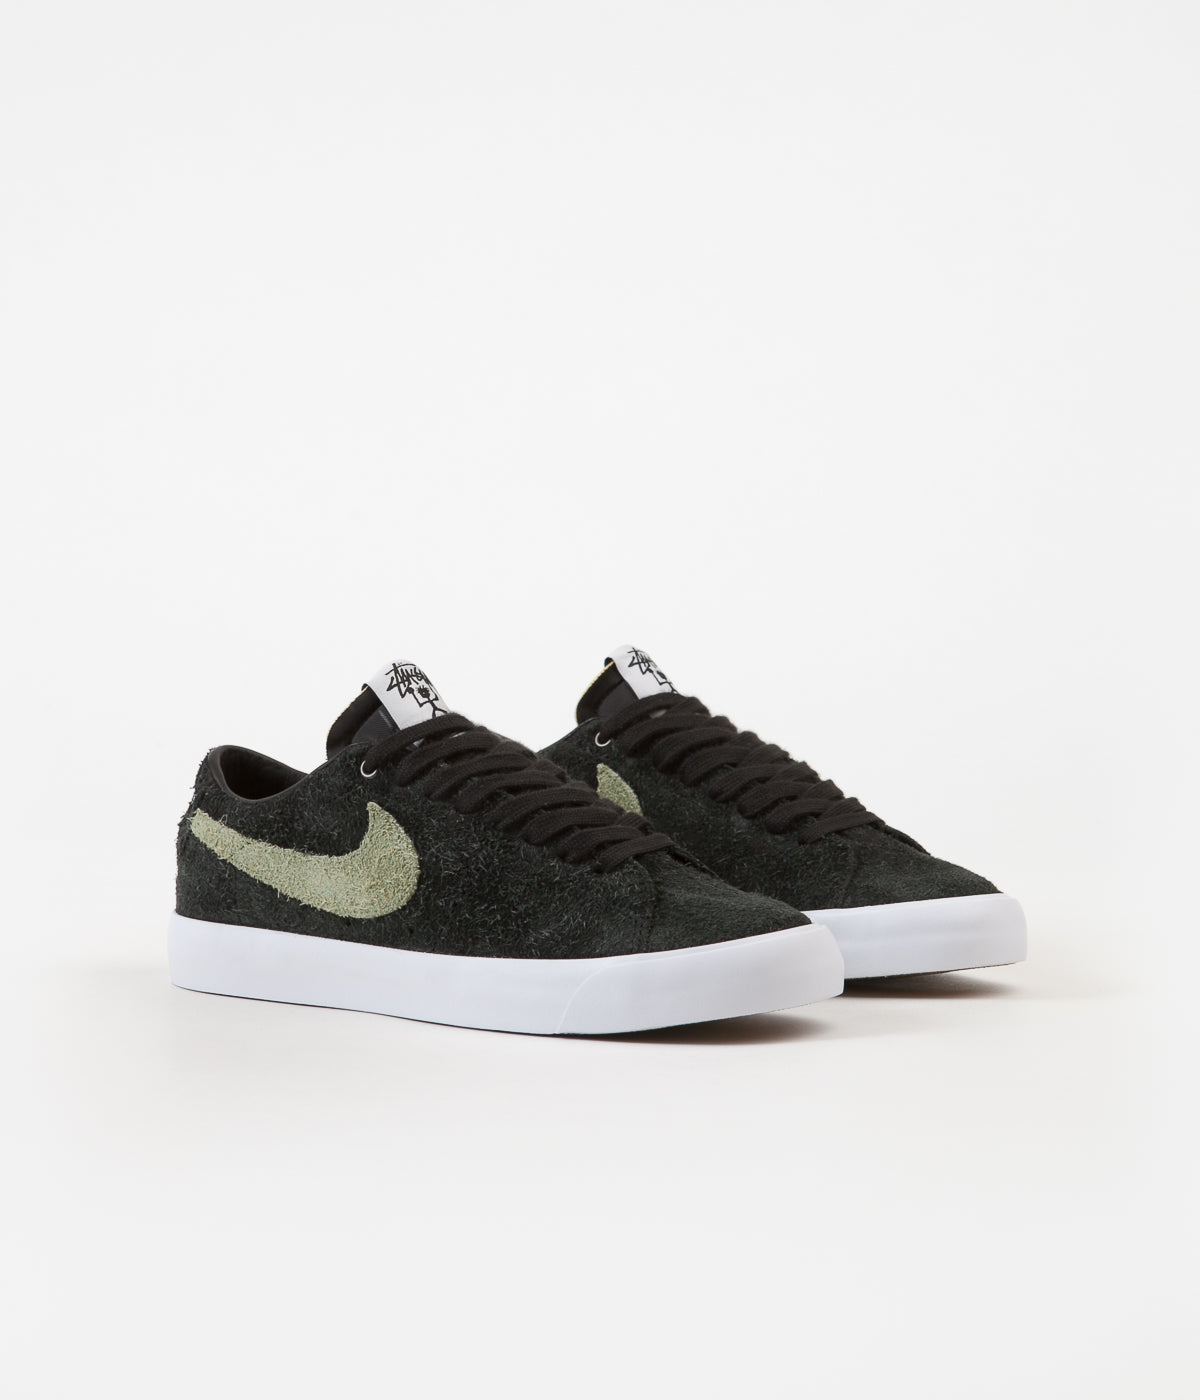 on sale bbc32 2f516 Nike SB x Stussy Blazer Low Shoes - Black / Palm Green ...